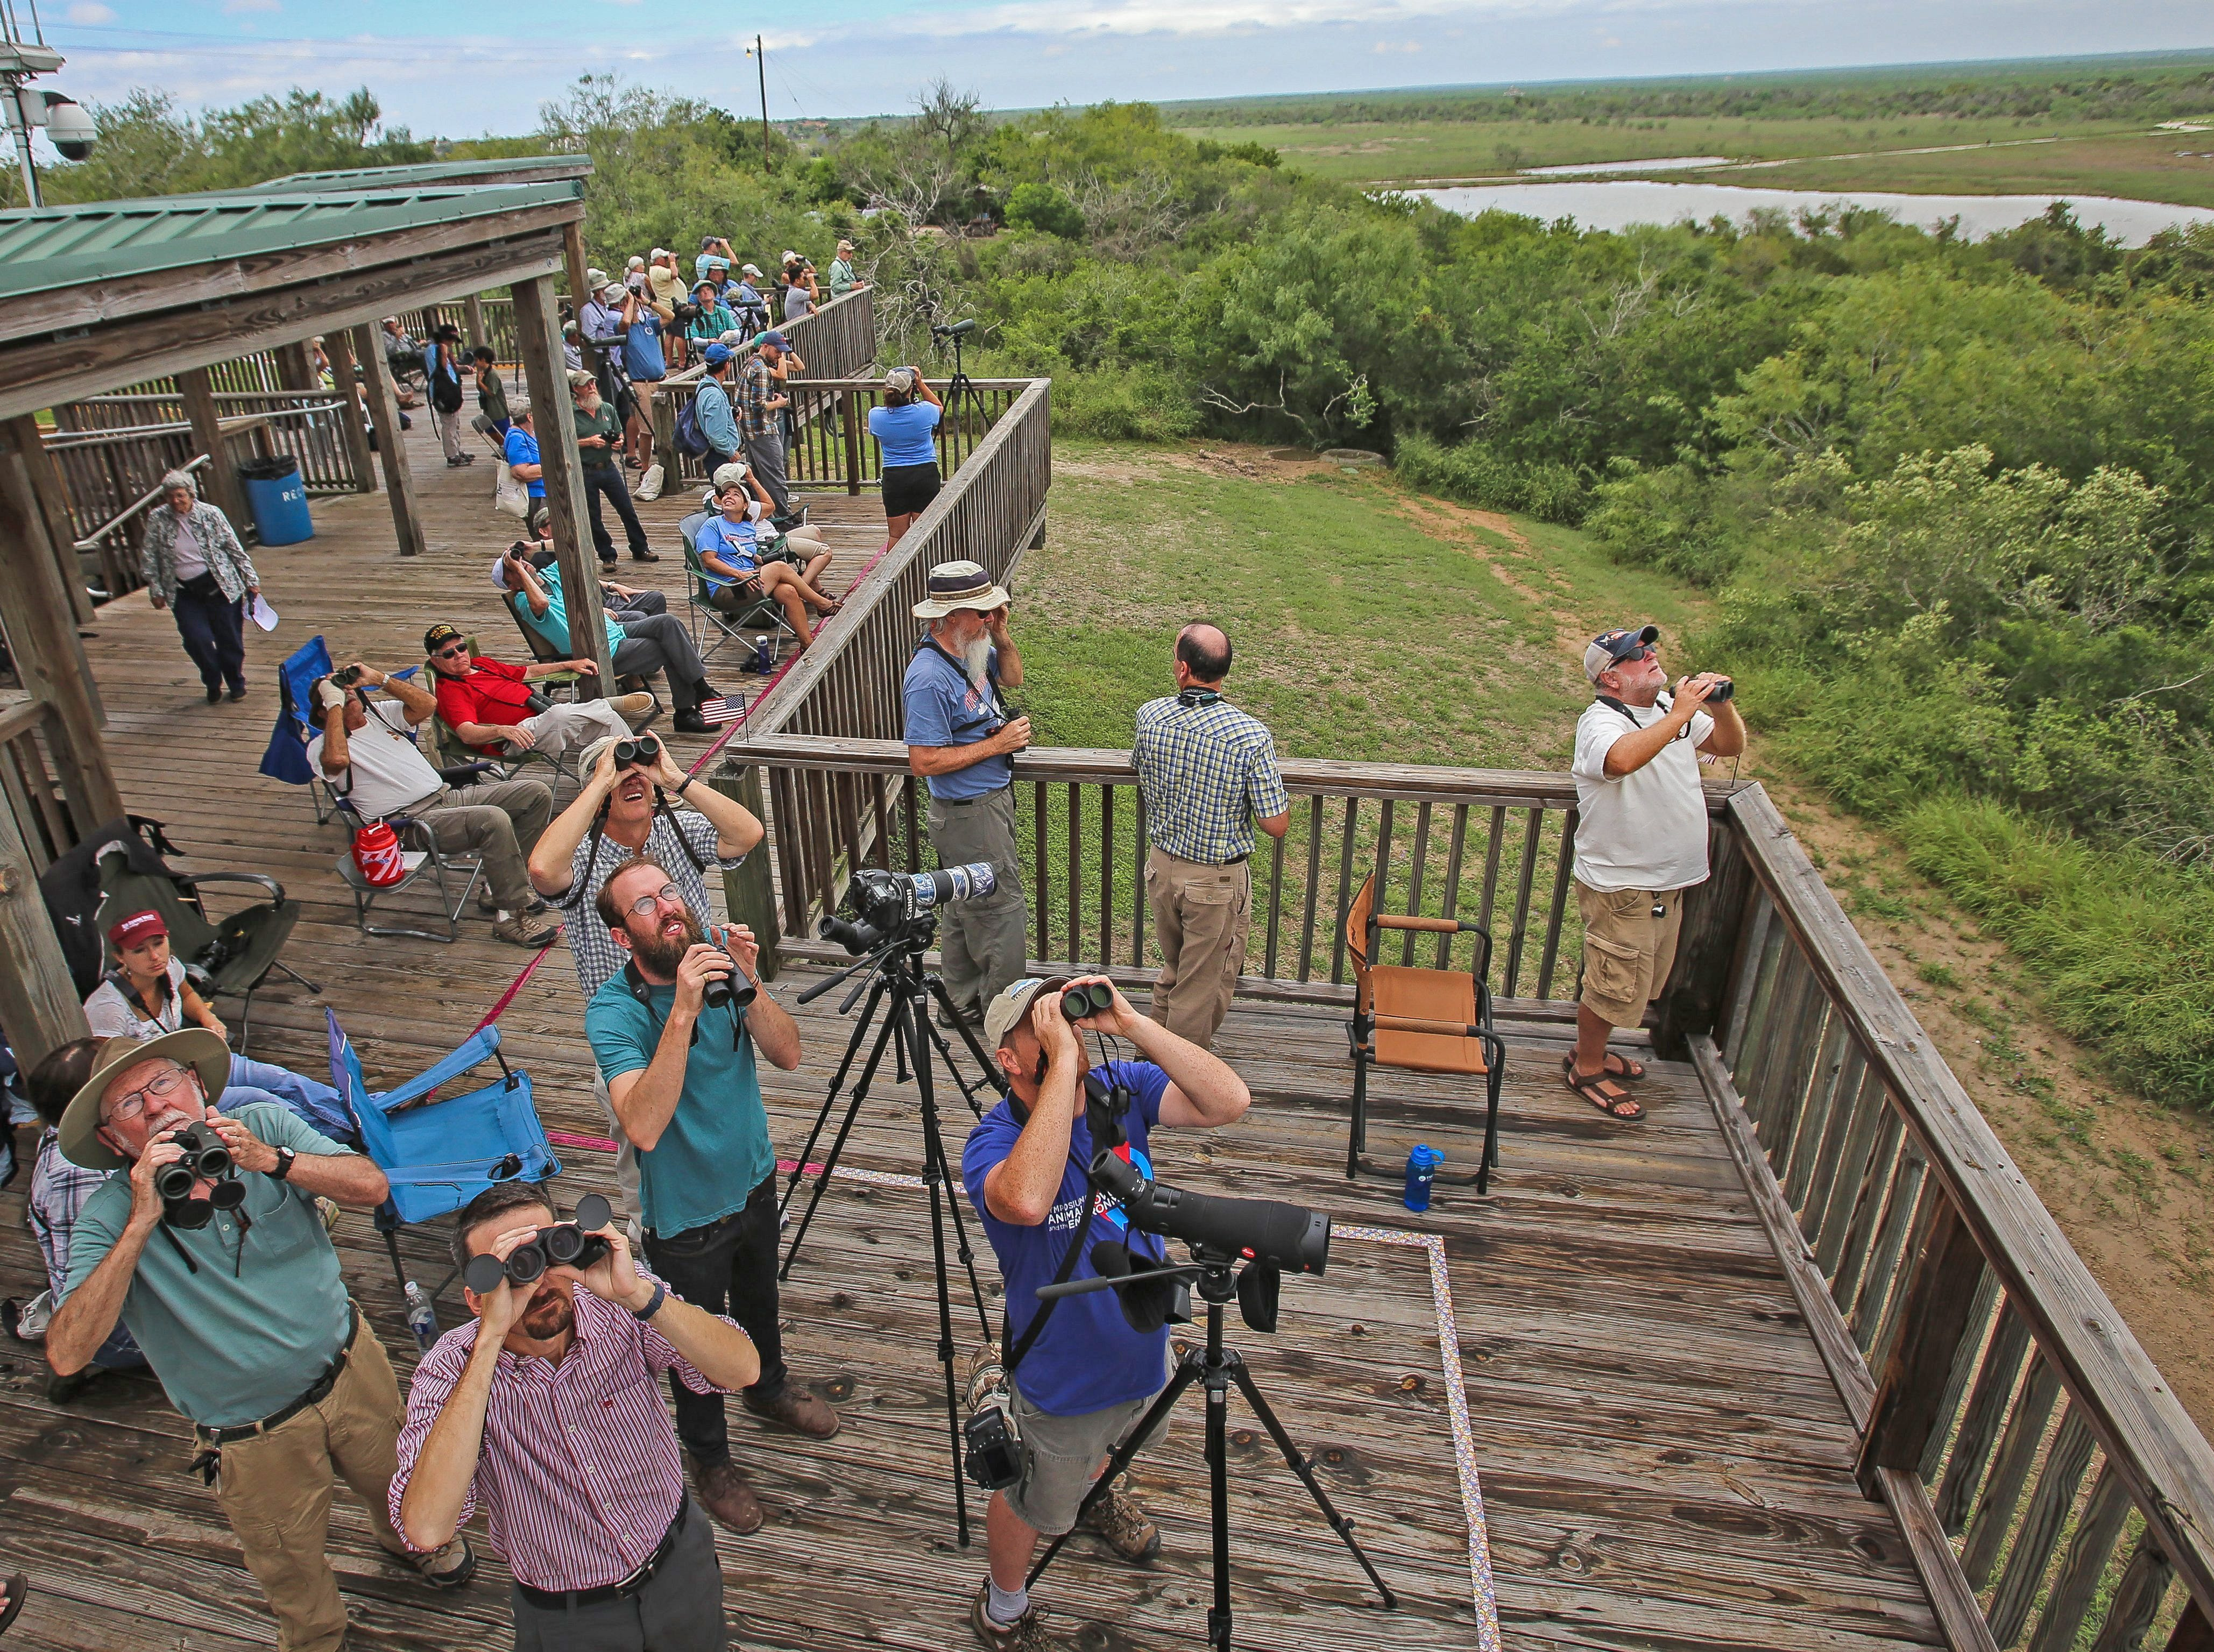 """Micah DeBenedetto/Special to the Caller-TimesBird watchers look to the skies during the 17th annual """"Celebration of Flight""""  event at Hazel Bazemore Park on Sunday, September 28, 2014.  The scientific study runs from August  15, 2014 to November 15, 2014 and includes three paid observers who turn data into Hawkwatch International to help determine health of each species of hawk as it migrates."""